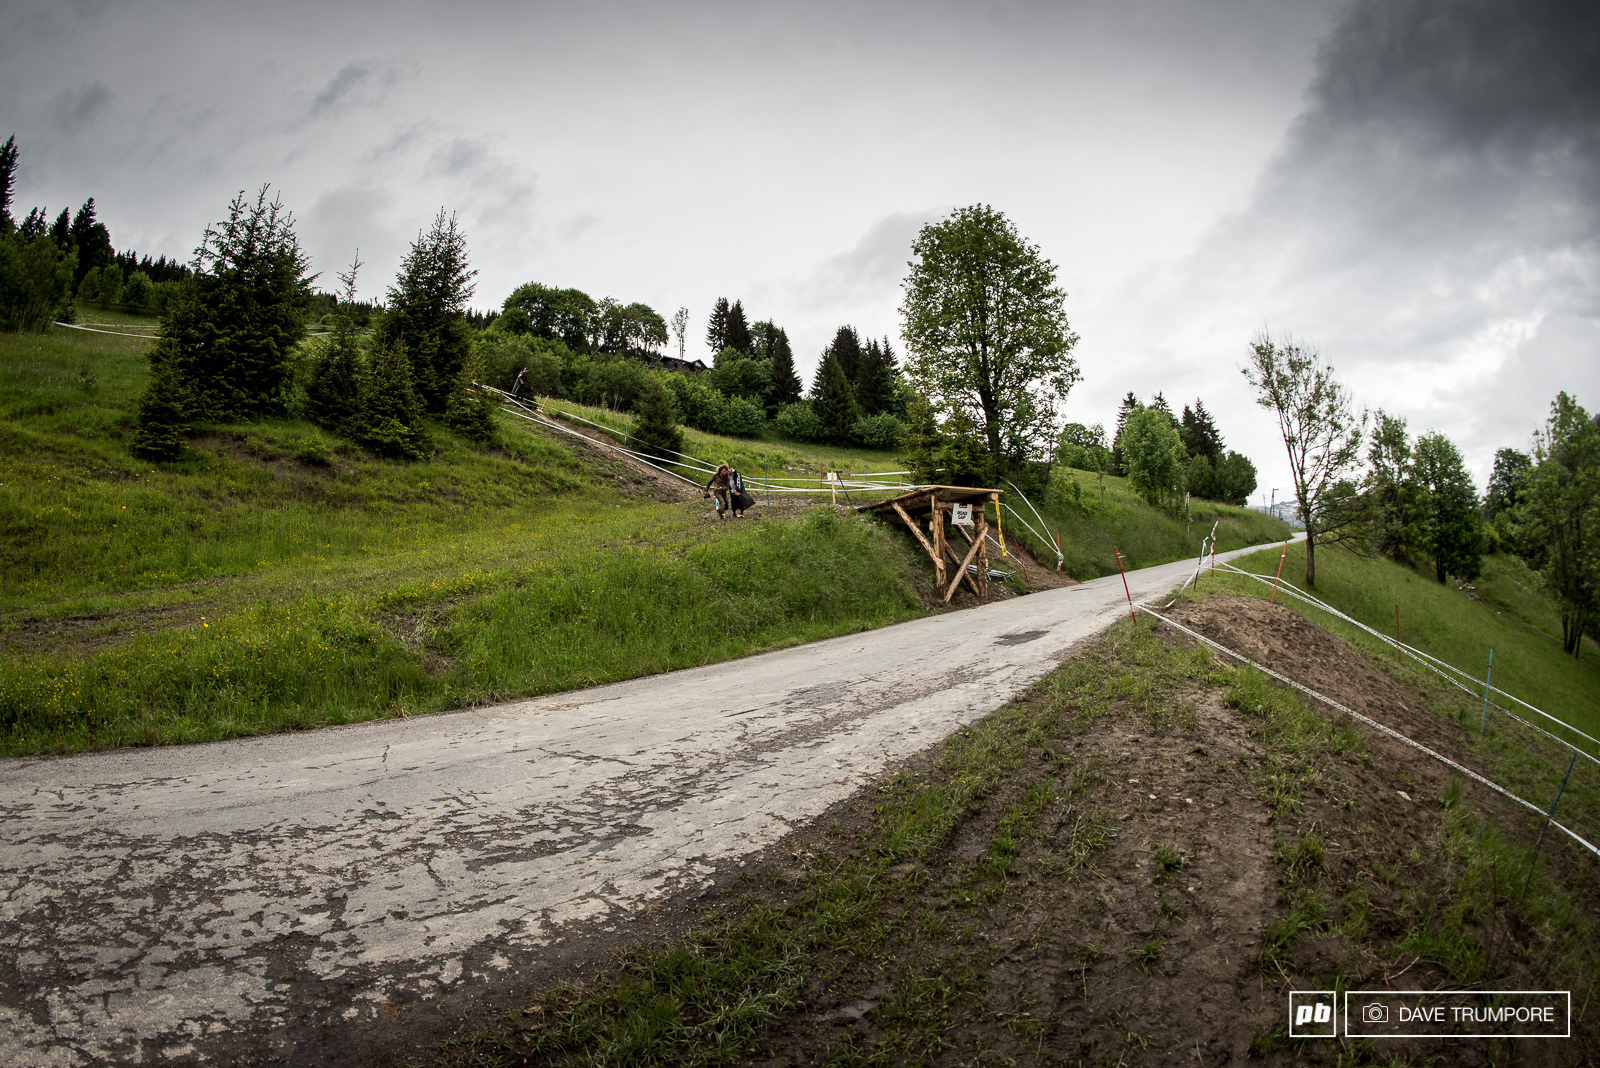 Slick and muddy corners lead to the final road gap on track where riders will have finally have the finish line in sight.